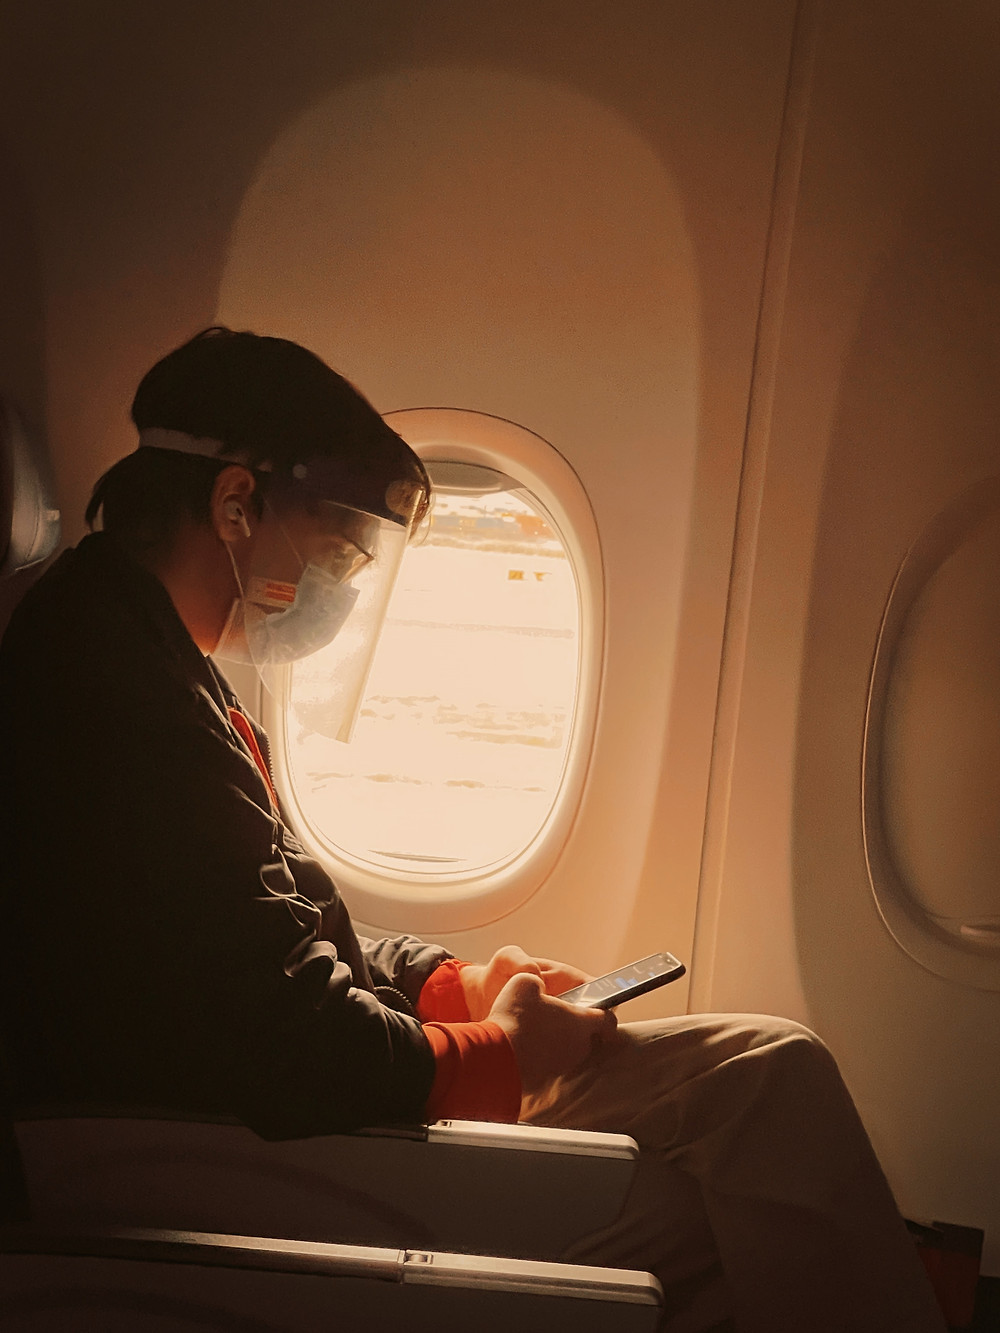 Man with mask on phone in a airplane